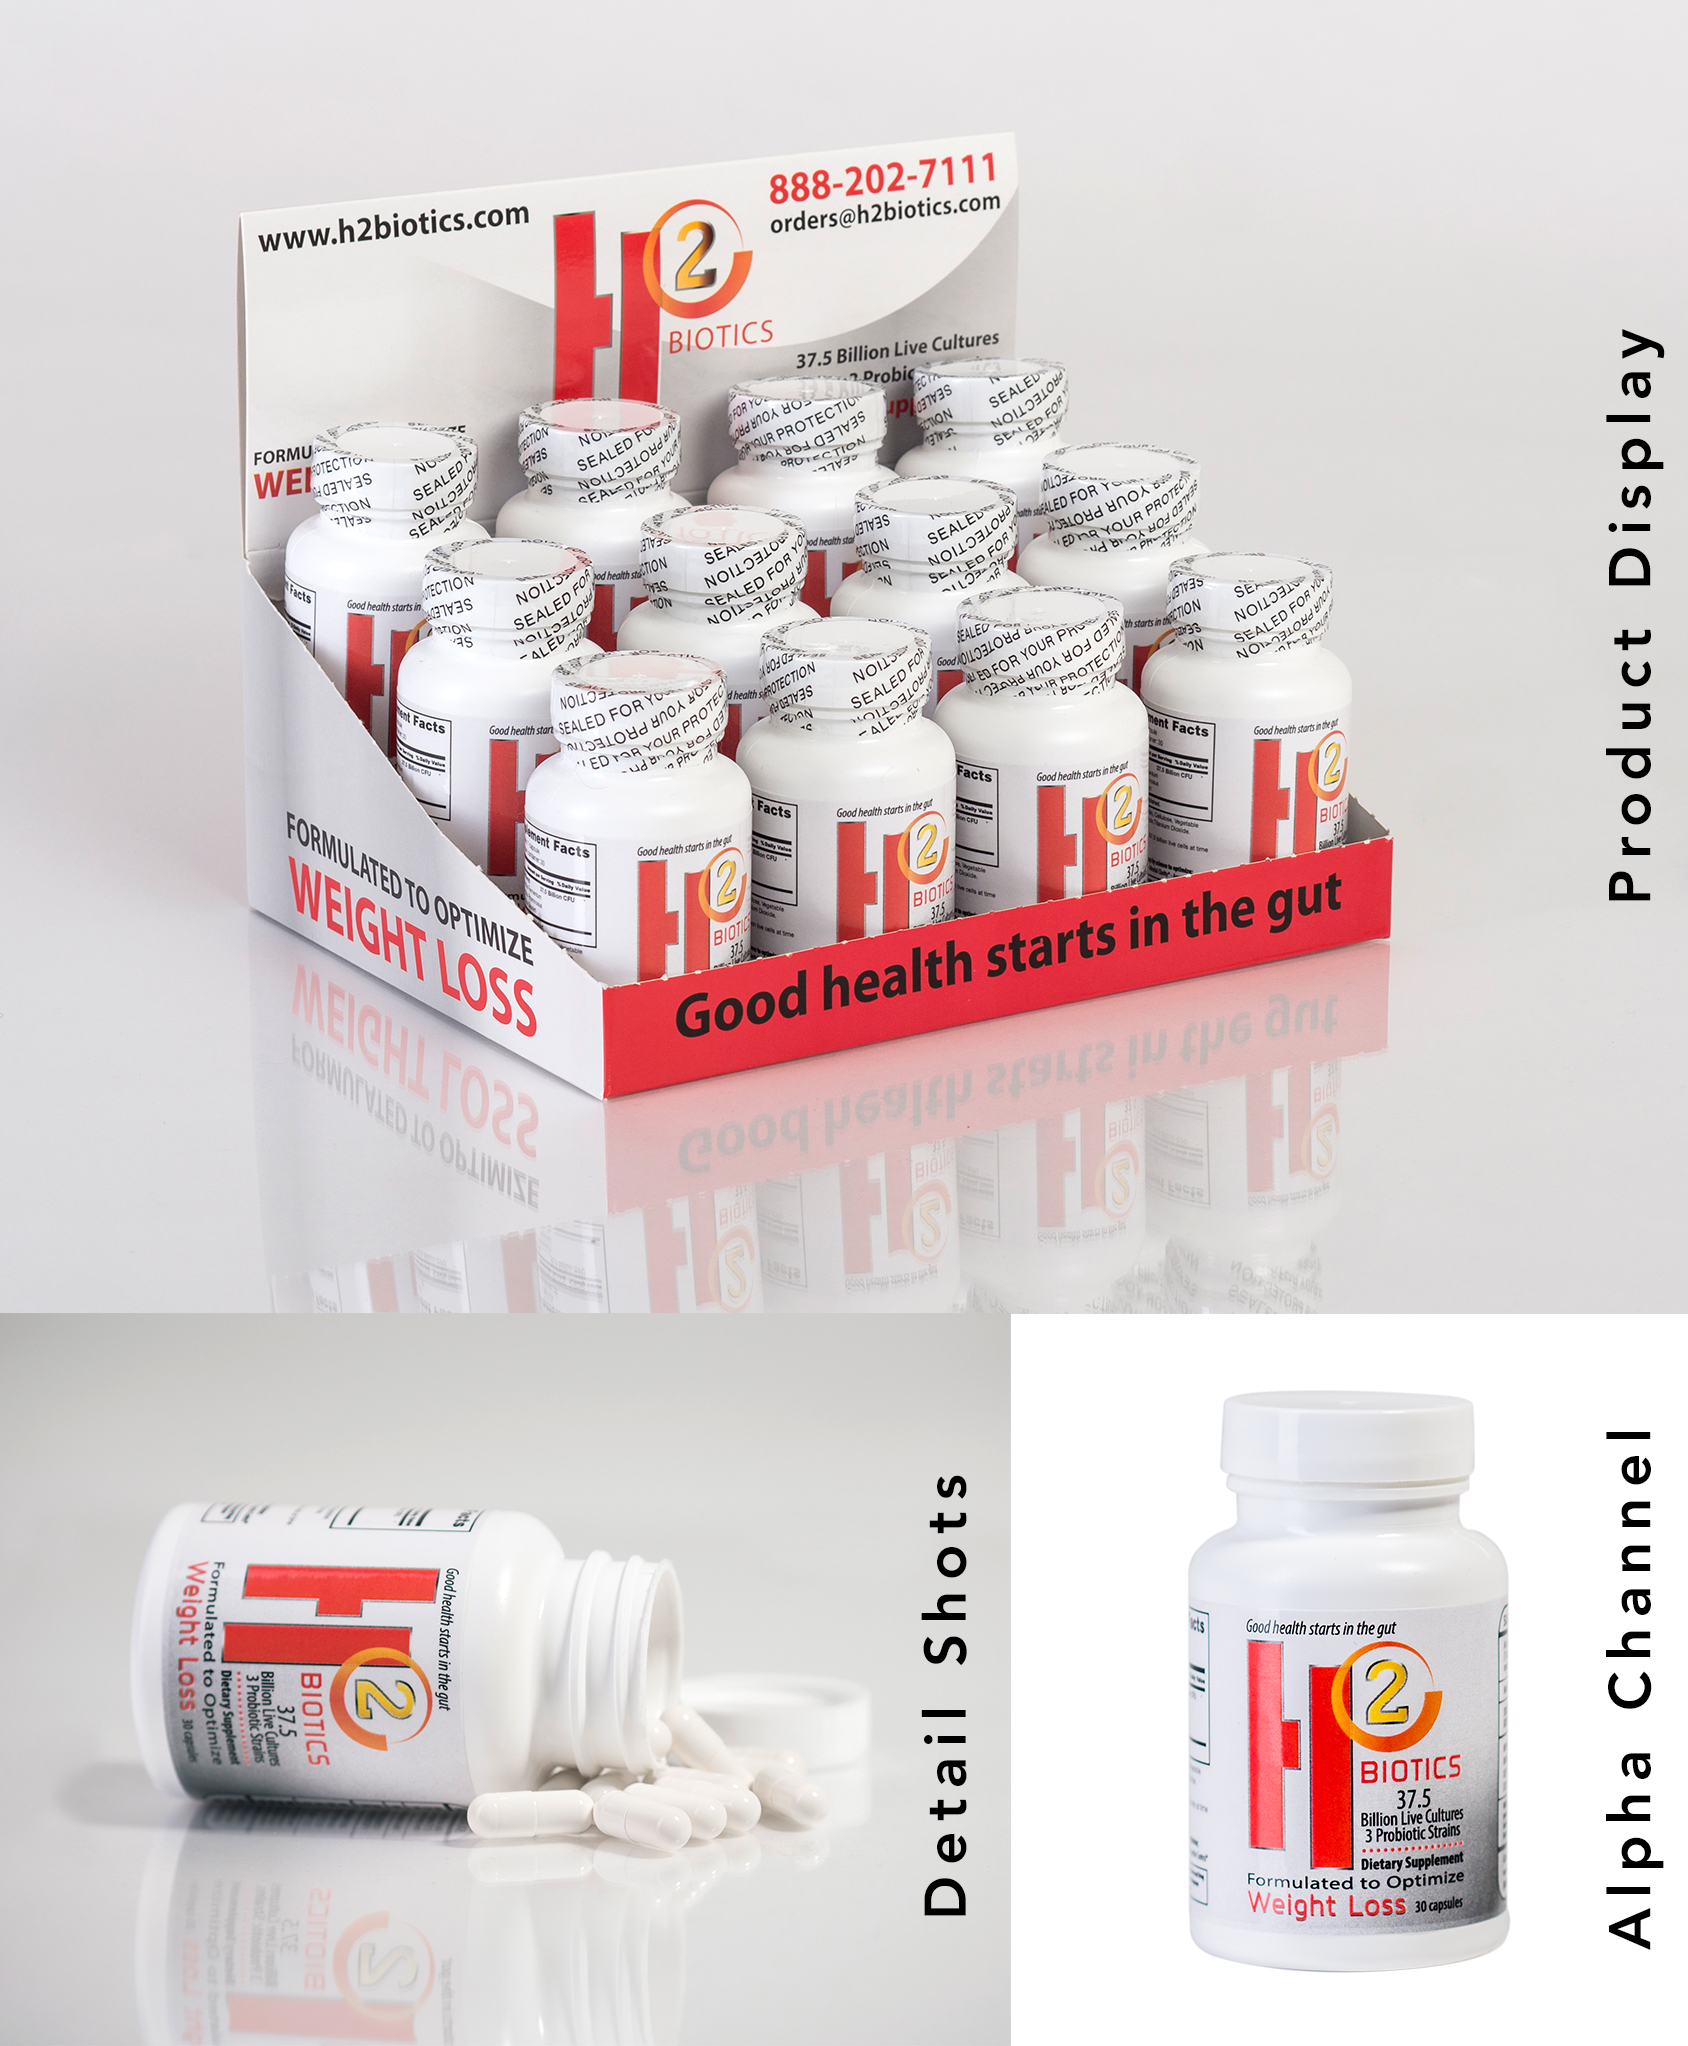 Product Shots for H2 Biotics